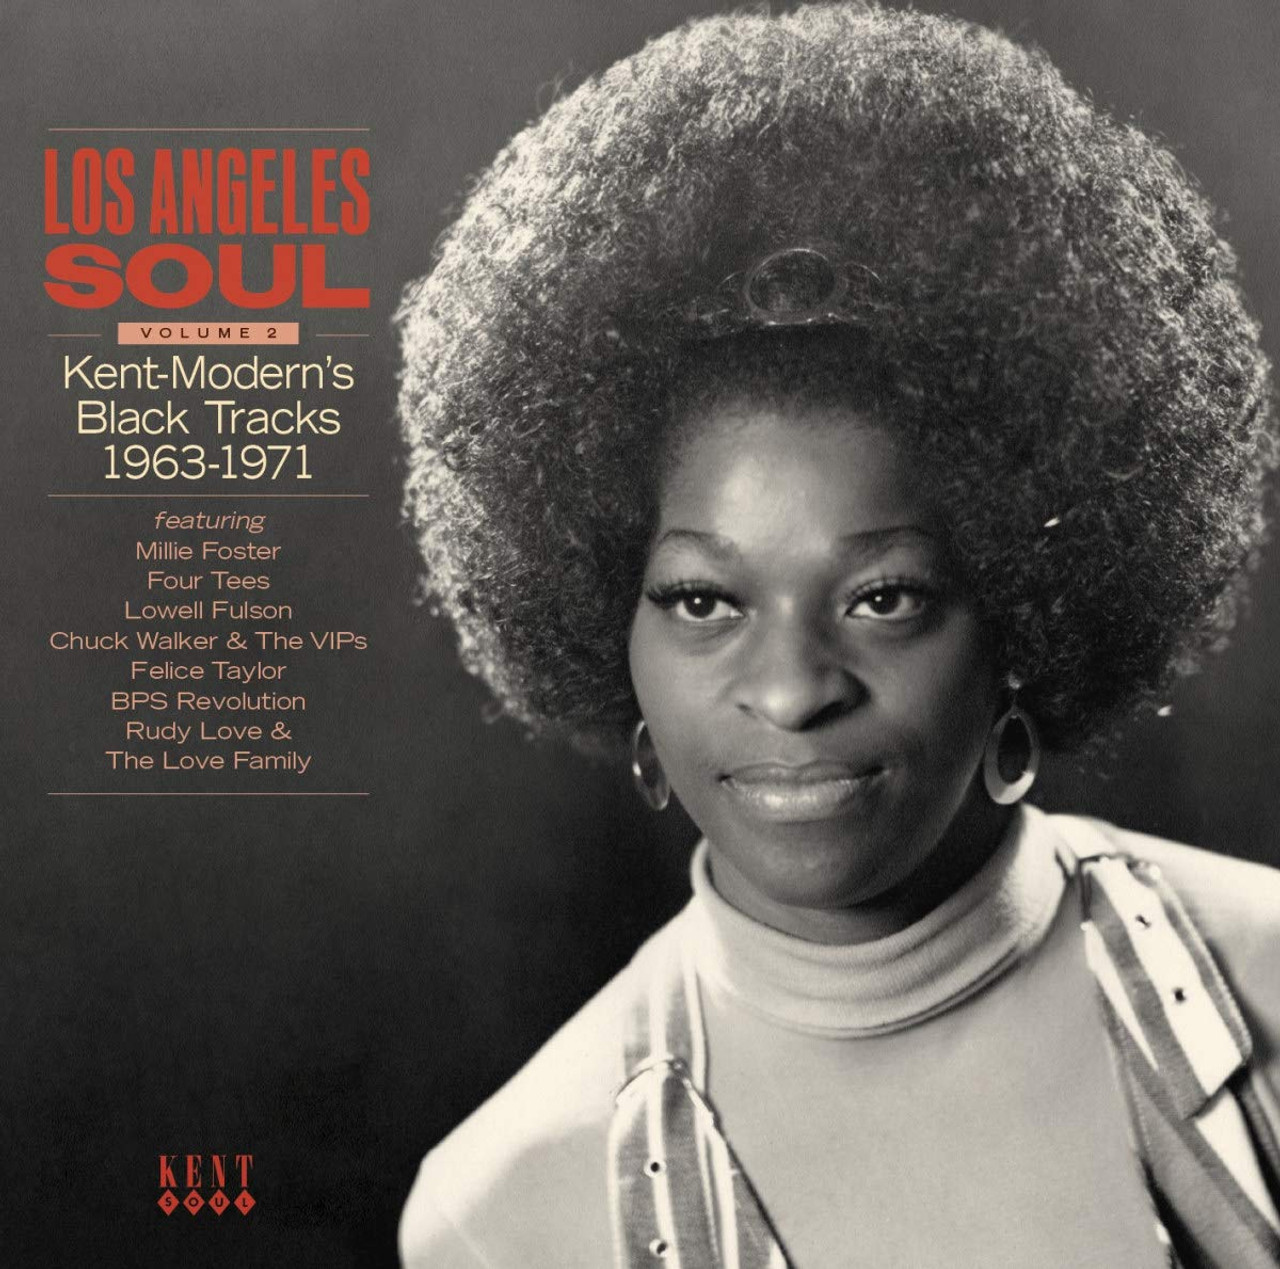 Los Angeles Soul Volume 2 - Kent-Modern's - 1963-1971 - 24 TRACKS